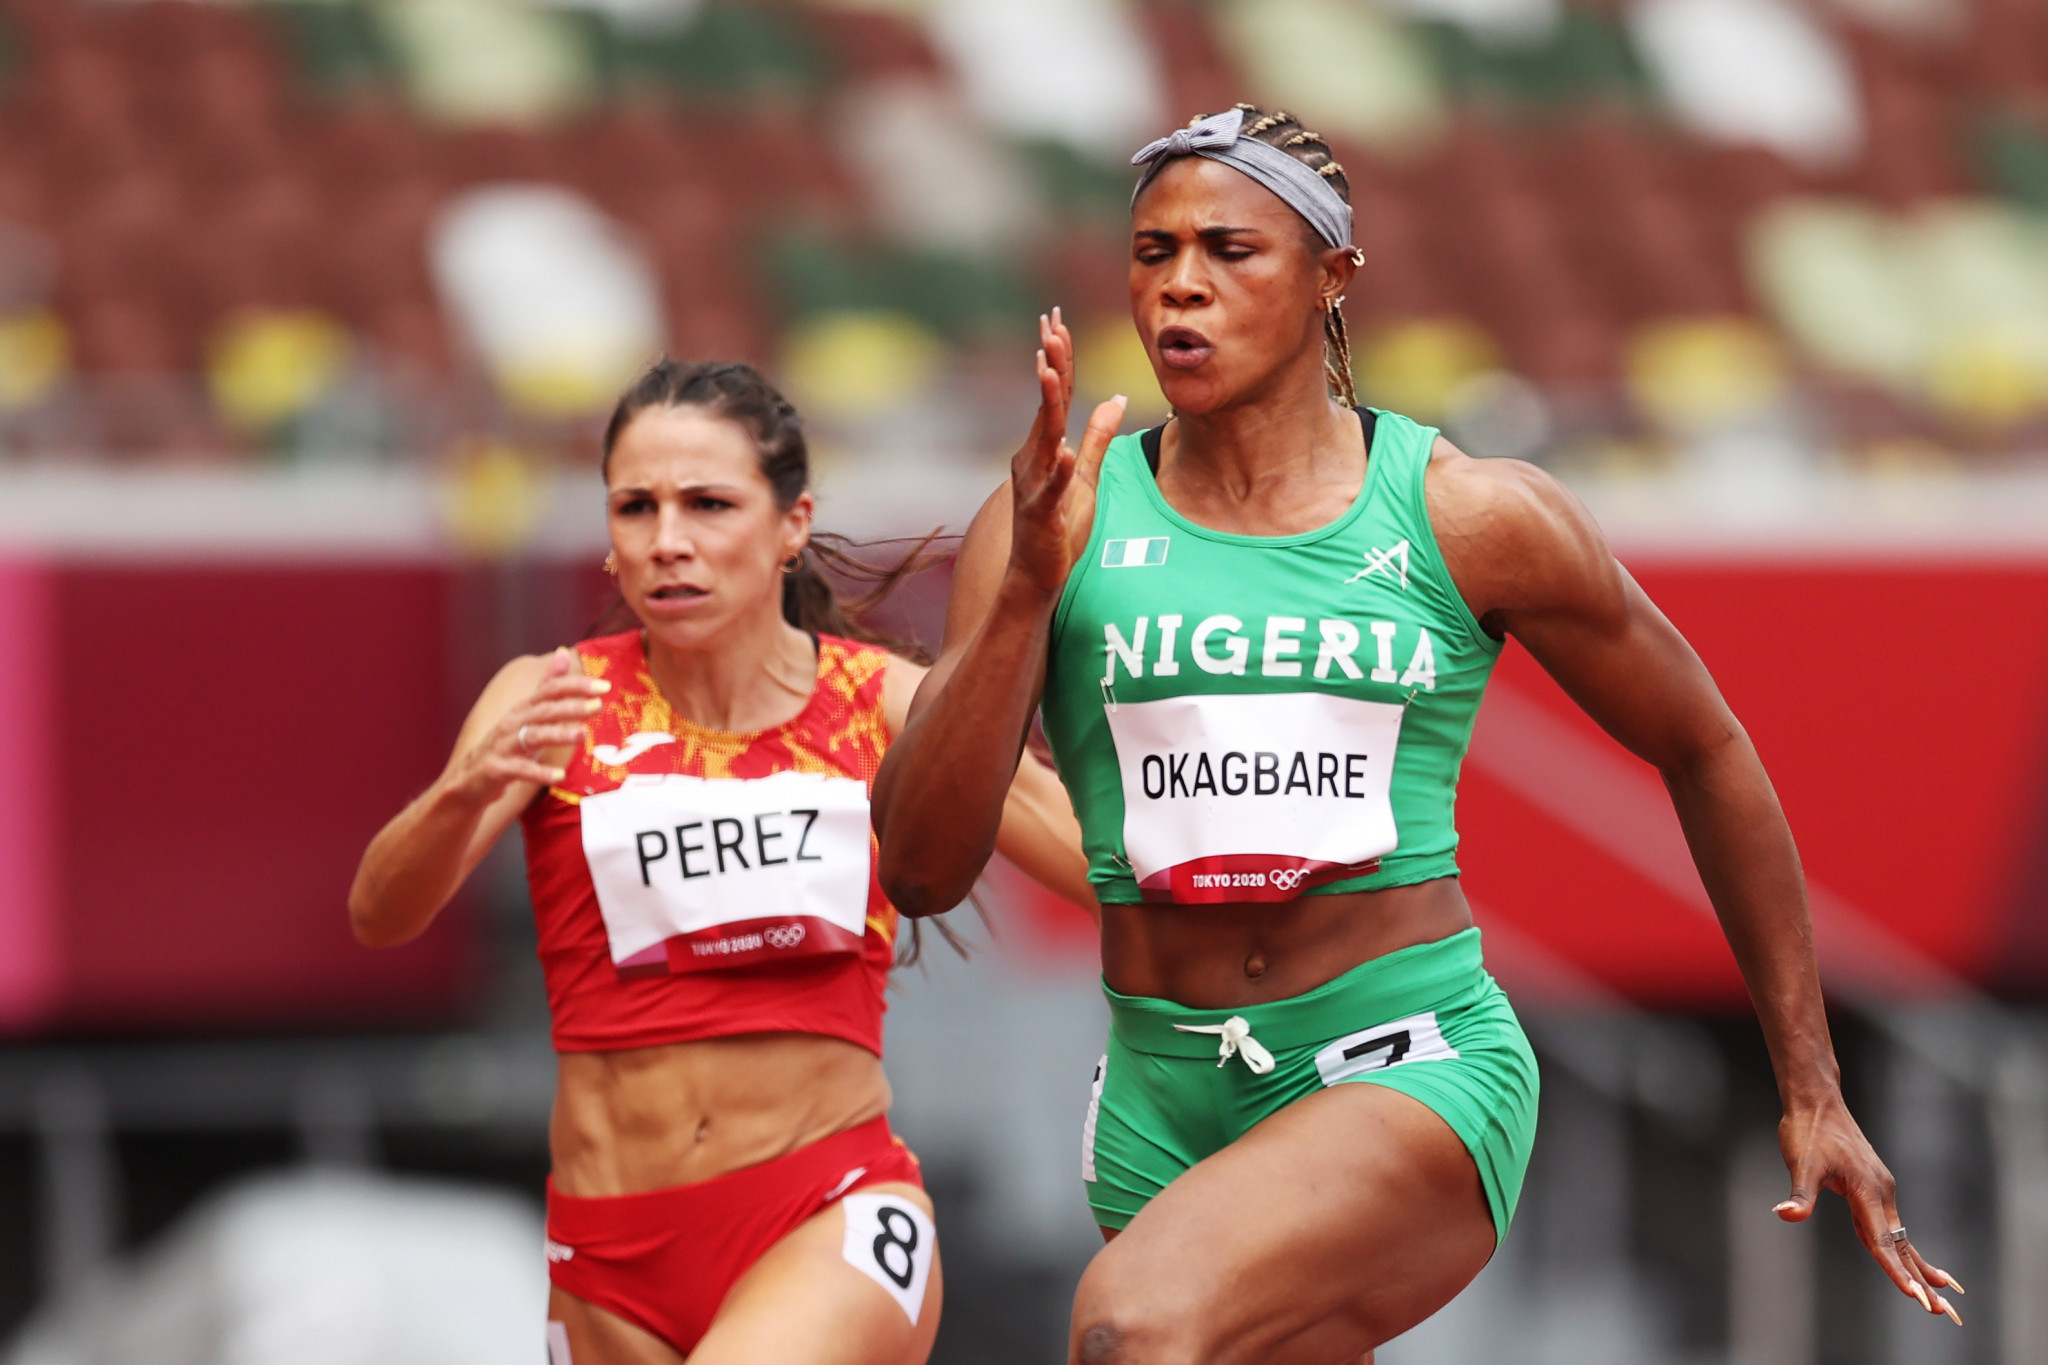 Sprinter Blessing Okagbare was among the Nigerian athletes cleared to compete at Tokyo 2020 but was then suspended after running the first round of the 100m following a positive drugs test before the Olympics ©Getty Images